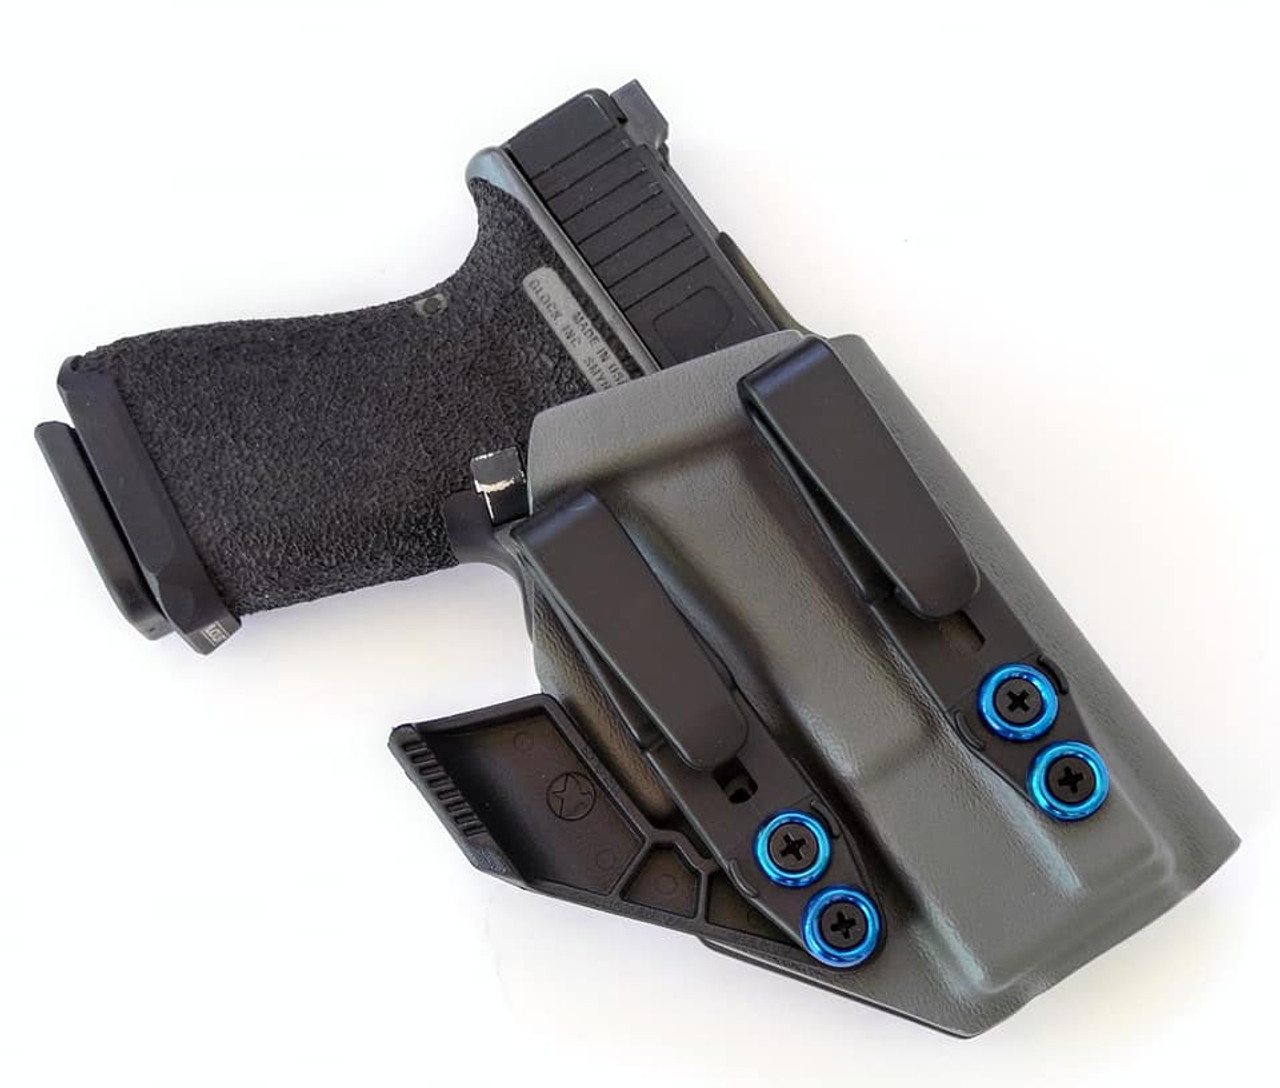 Glock 19 Dual Hook Appendix Carry Holster